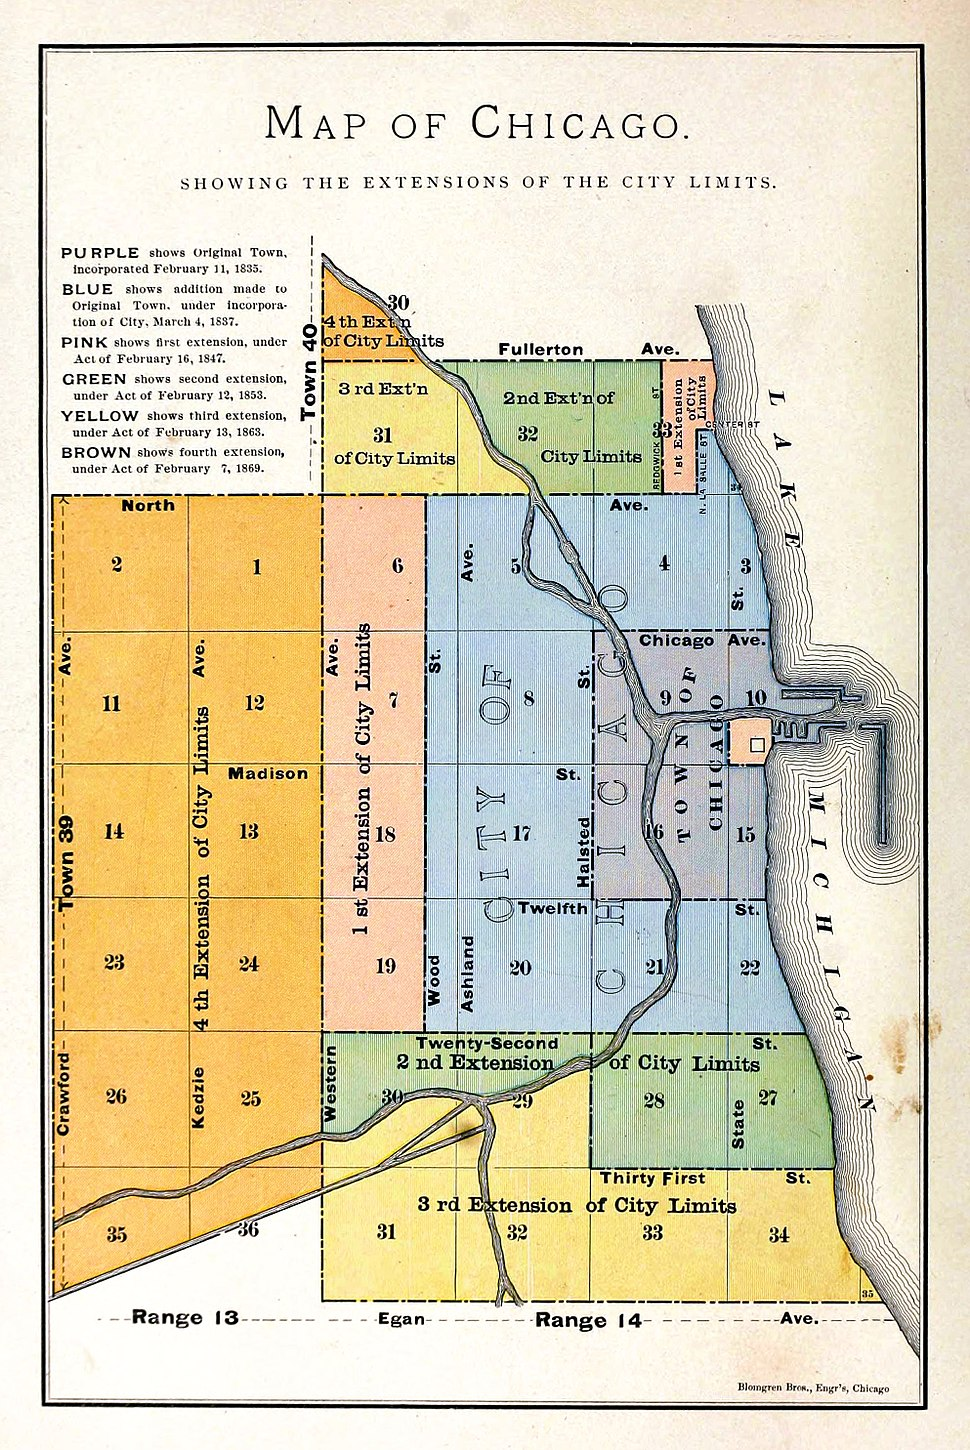 1884 map of Chicago showing extensions to city limits